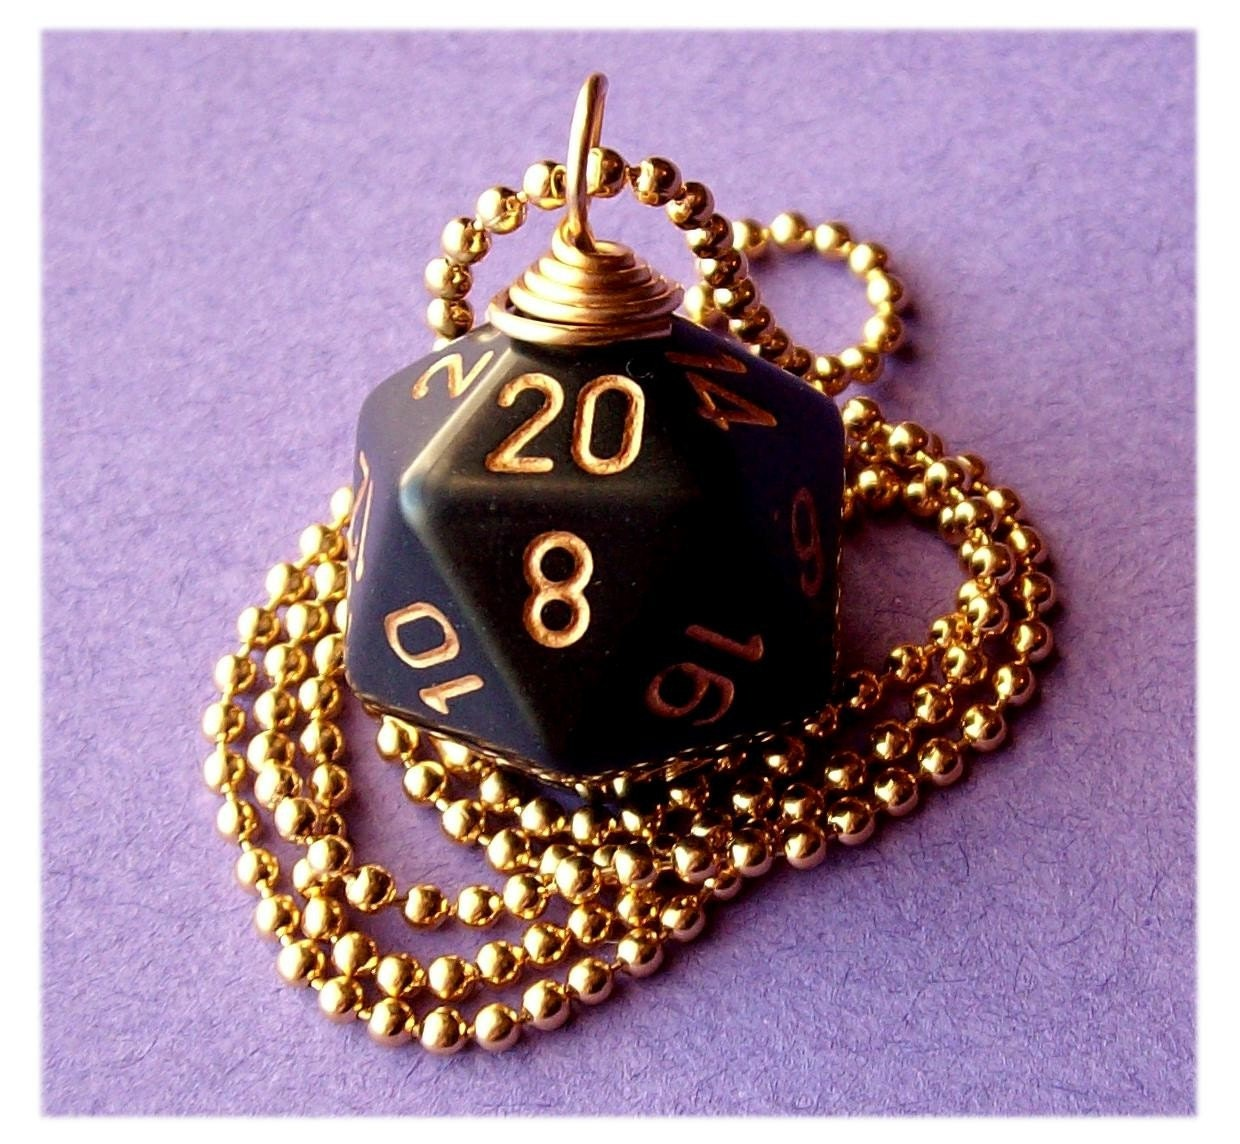 geekery, dice, die, geek, game, dnd, jewelry, necklace, pendant, dungeons dragons, pawandclawdesigns, black, gold, d20